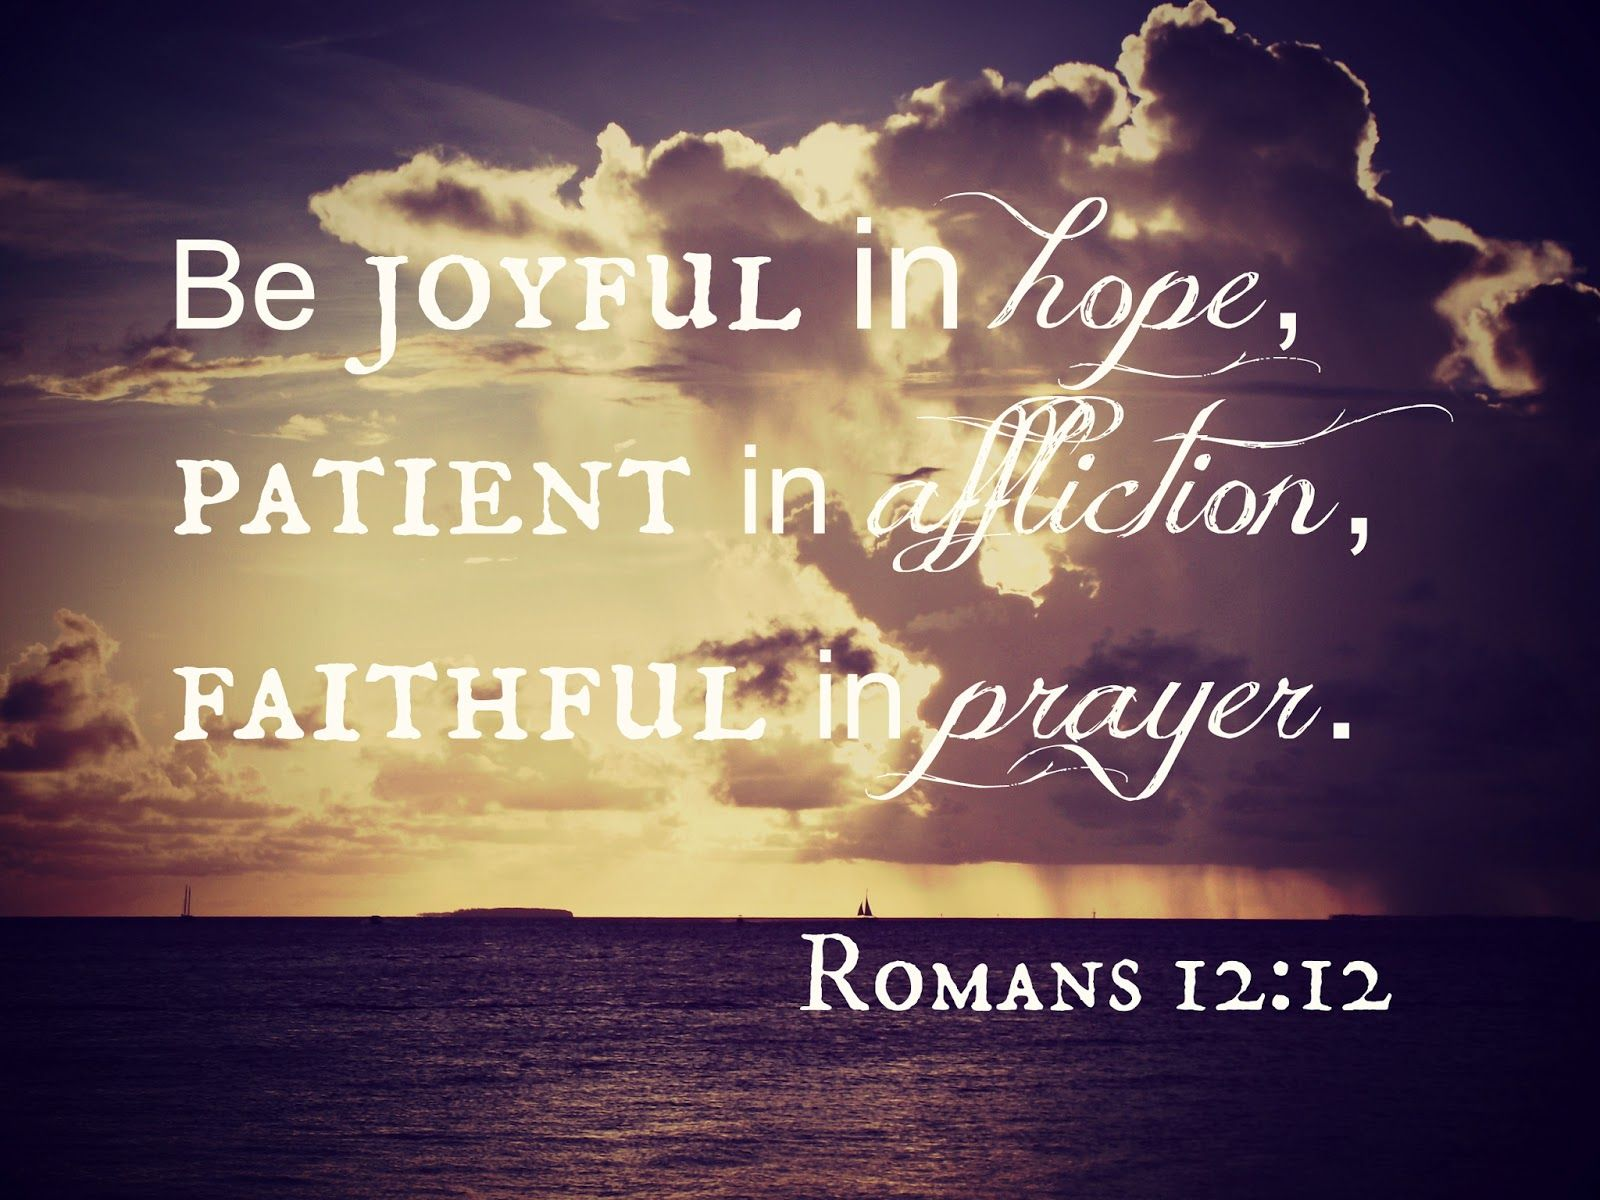 Inspirational Bible Quotes About Life 30 Best Inspirations Images On Pinterest  Bible Scriptures